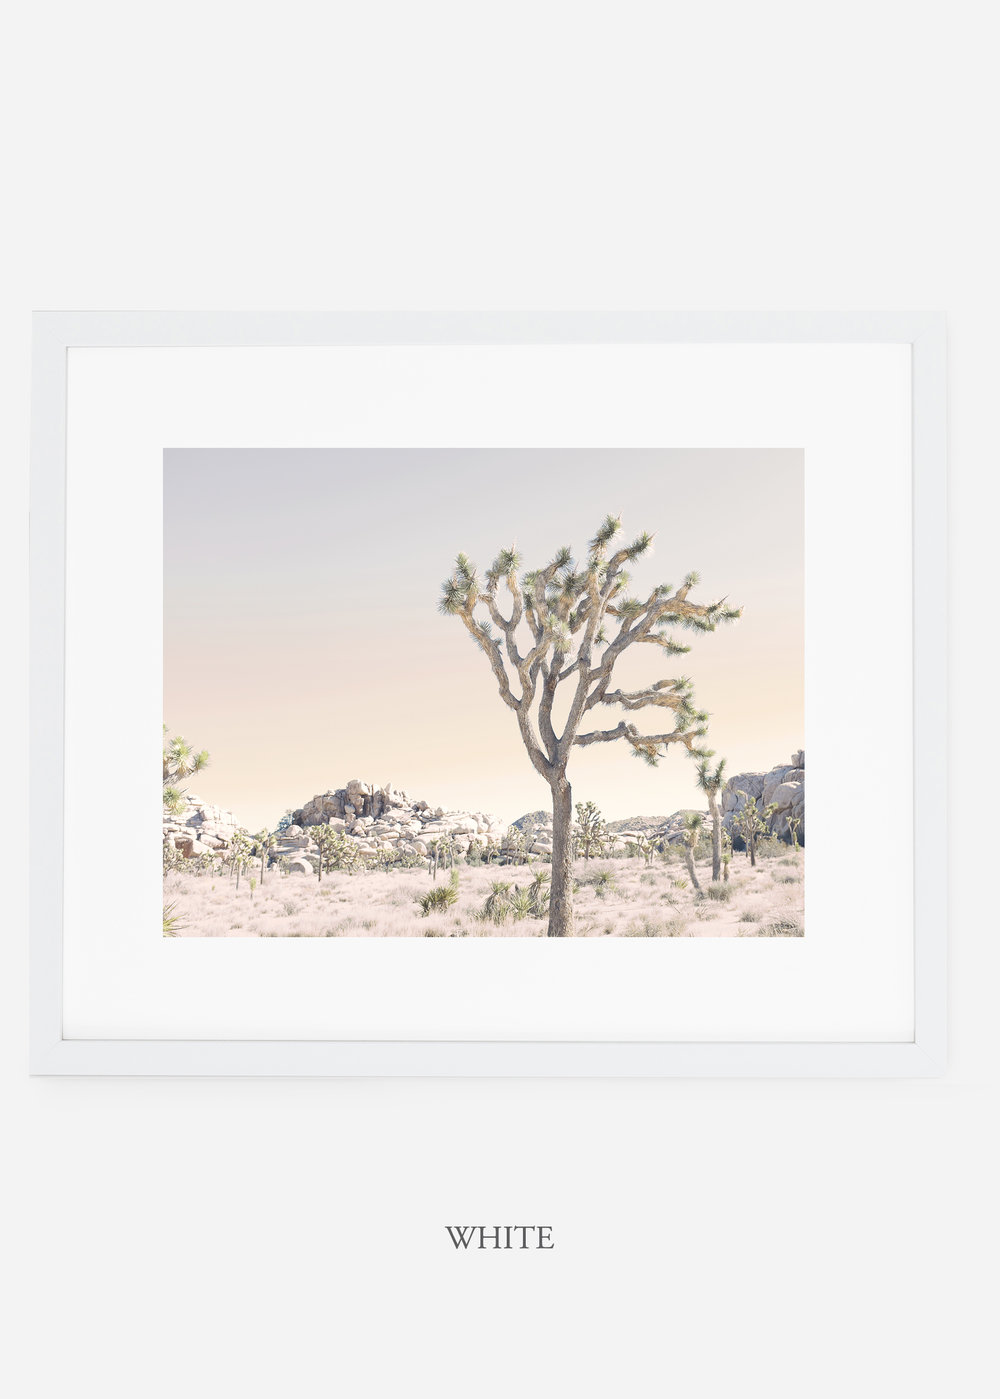 WilderCalifornia_whiteframe_JoshuaTree_No.3_interiordesign_prints_art.jpg